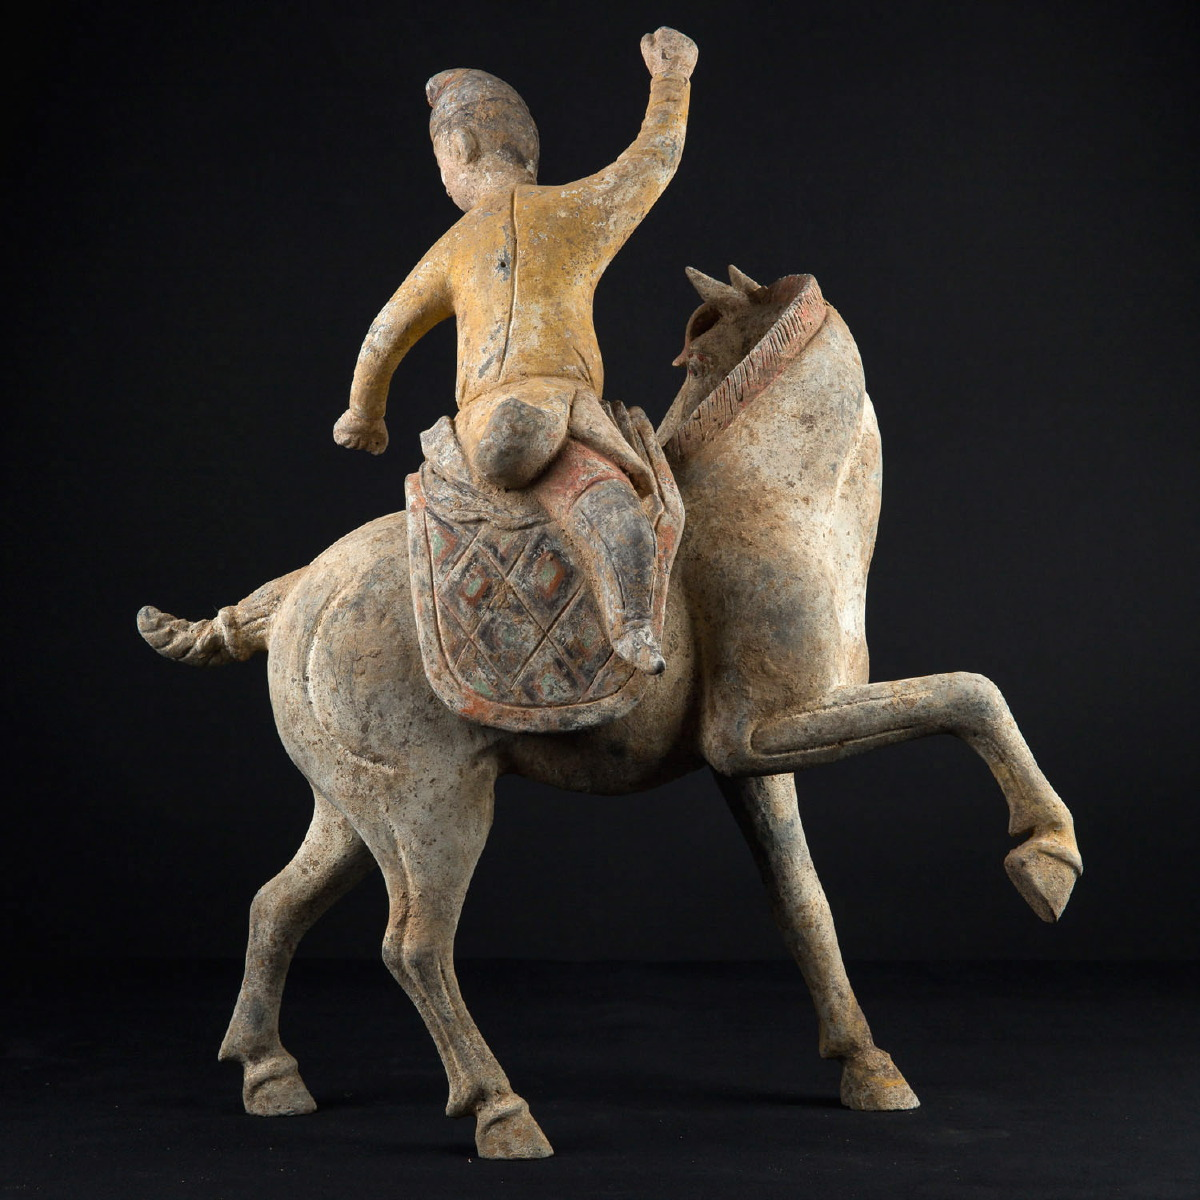 Photo of polo-player-of-the-steppes-tang-dynasty-terracotta-tl-test-musuem-quality-galerie-golconda